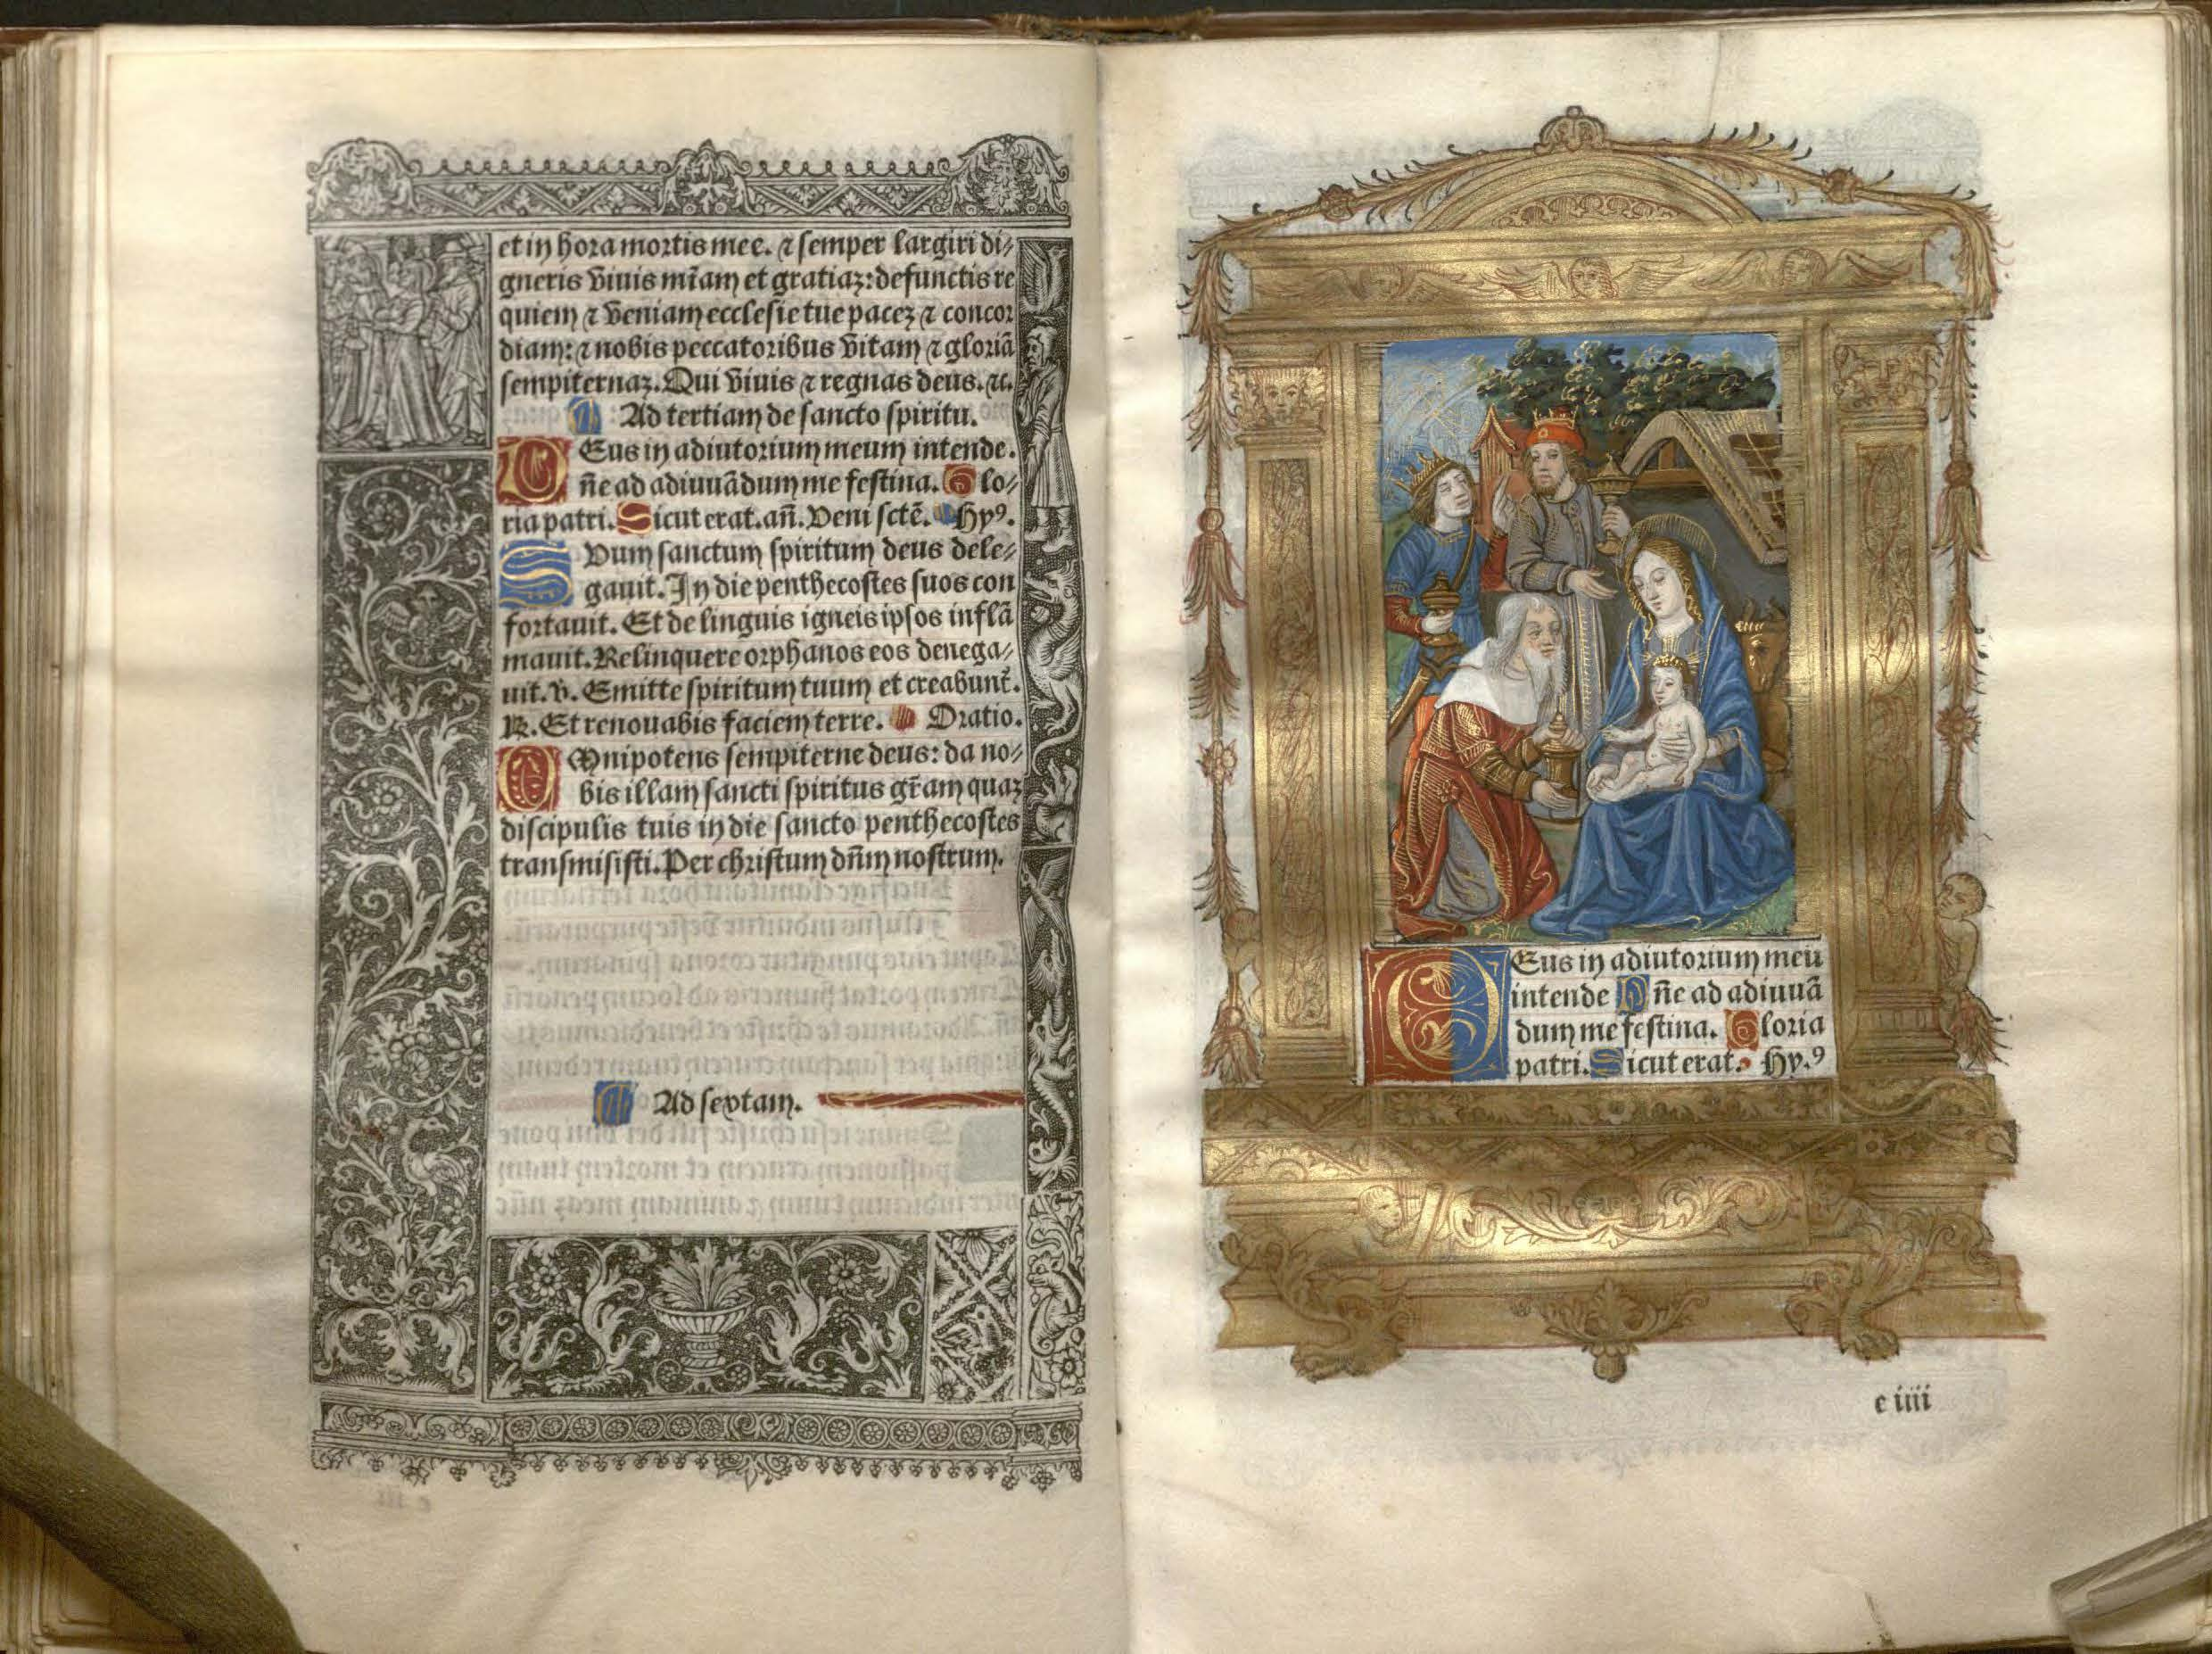 Image of an Opening featuring a miniature of the Adoration of the Magi in a Printed Book of Hours, ca. 1505.